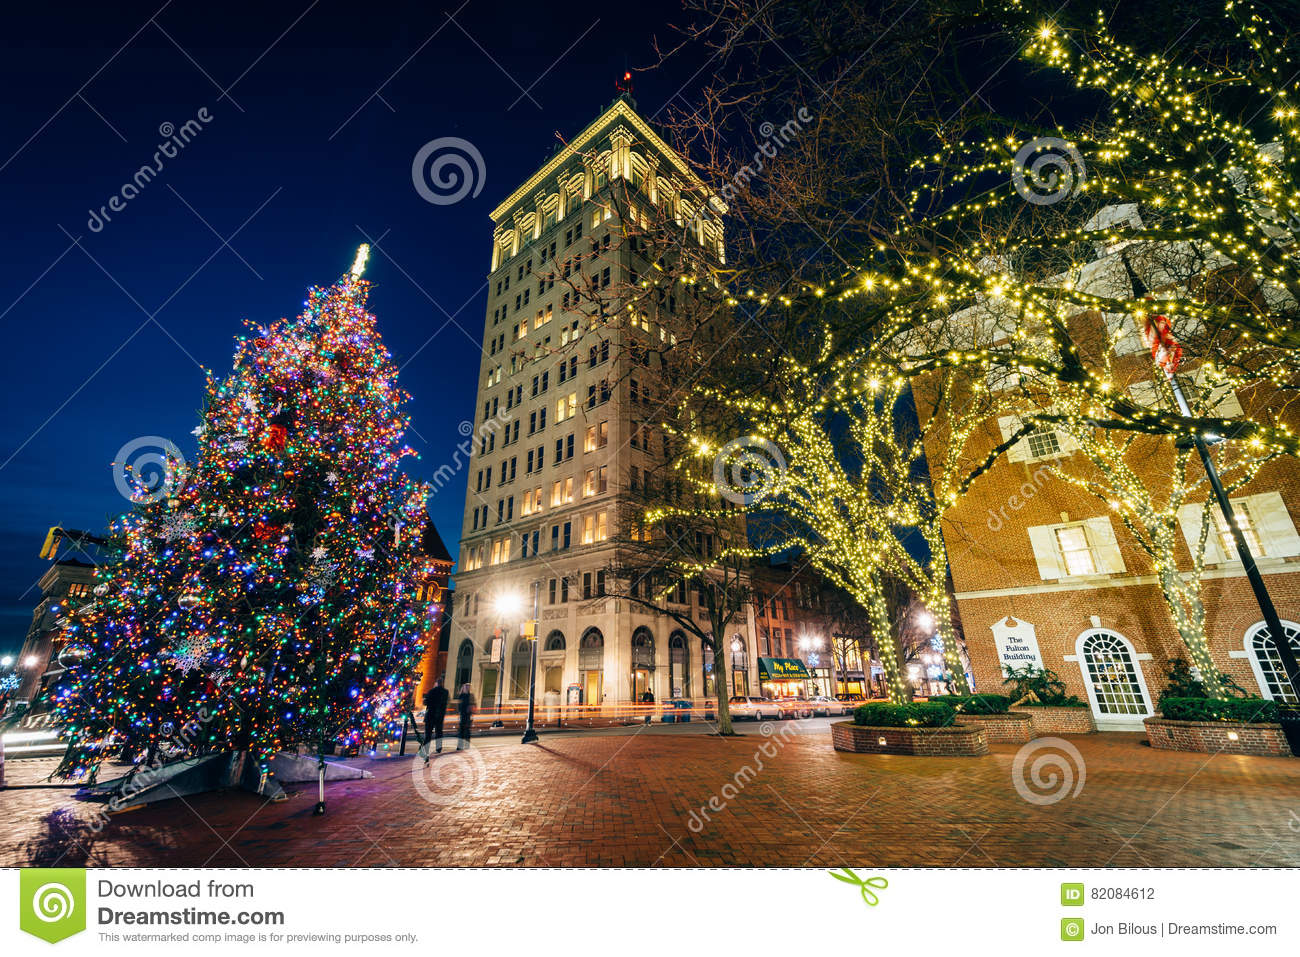 christmas tree and buildings at penn square at night in lancast